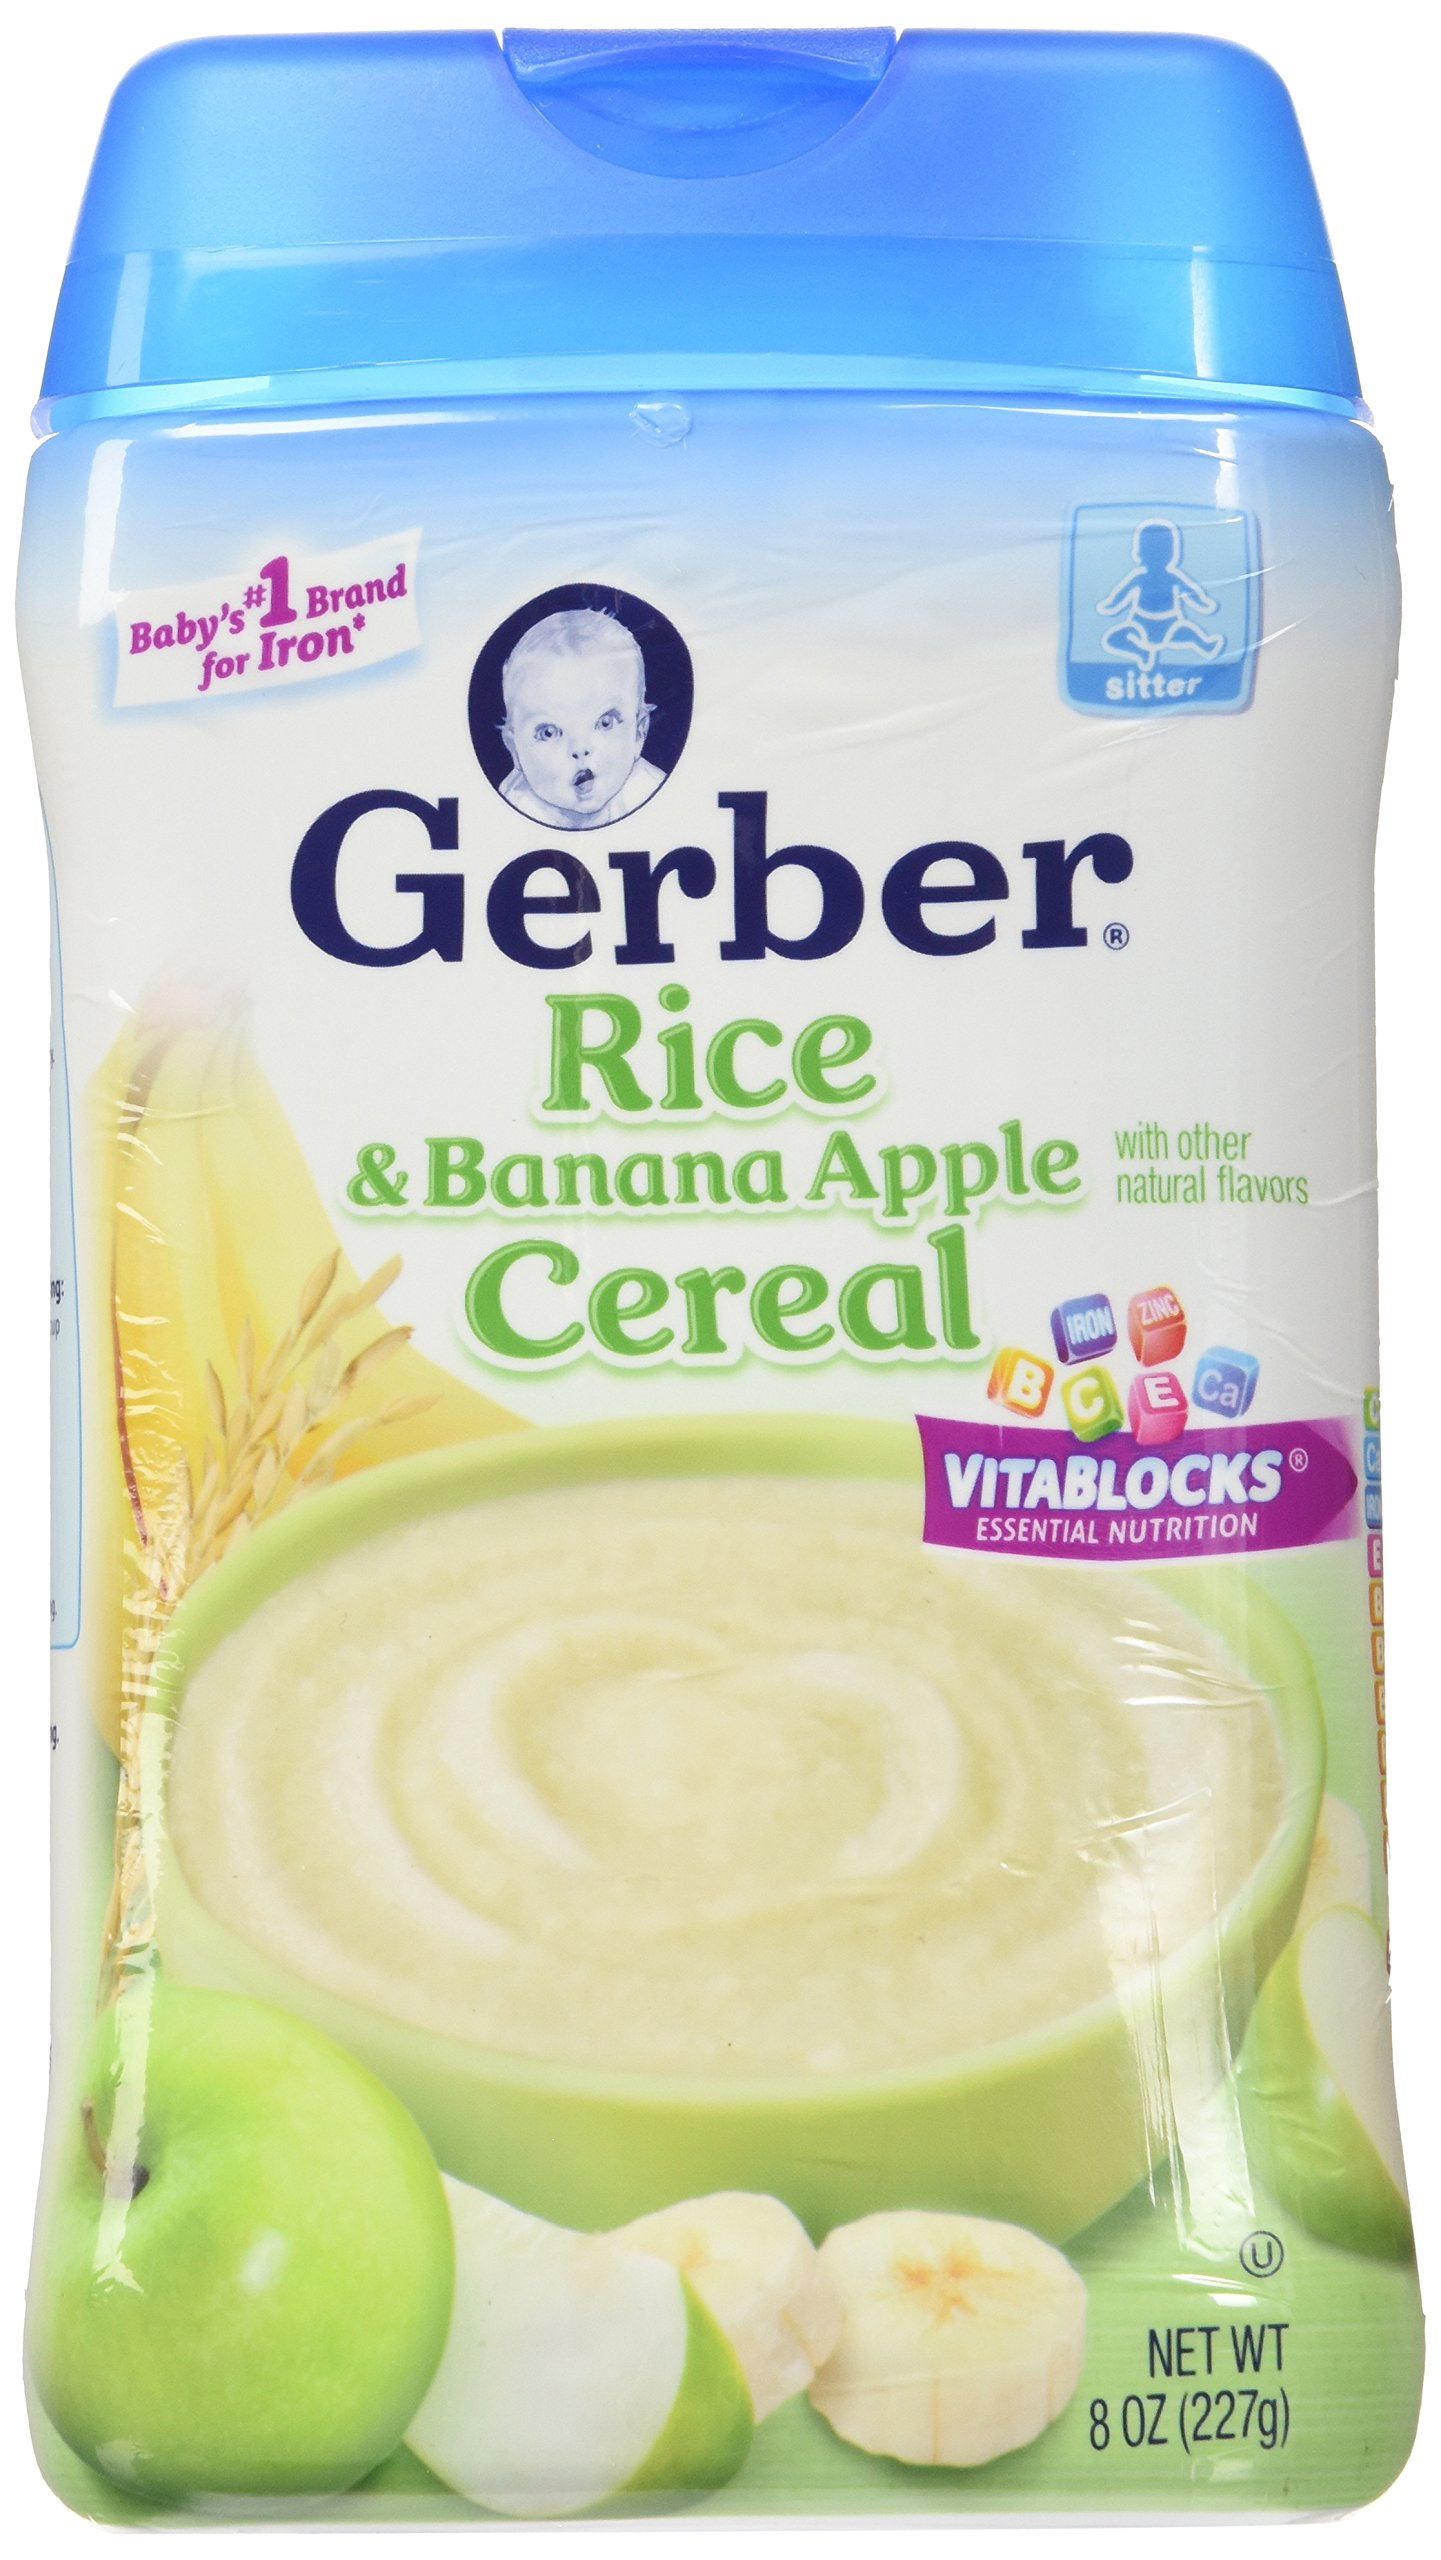 Gerber RICE & BANANA APPLE CEREAL 8oz. (Pack of 4)